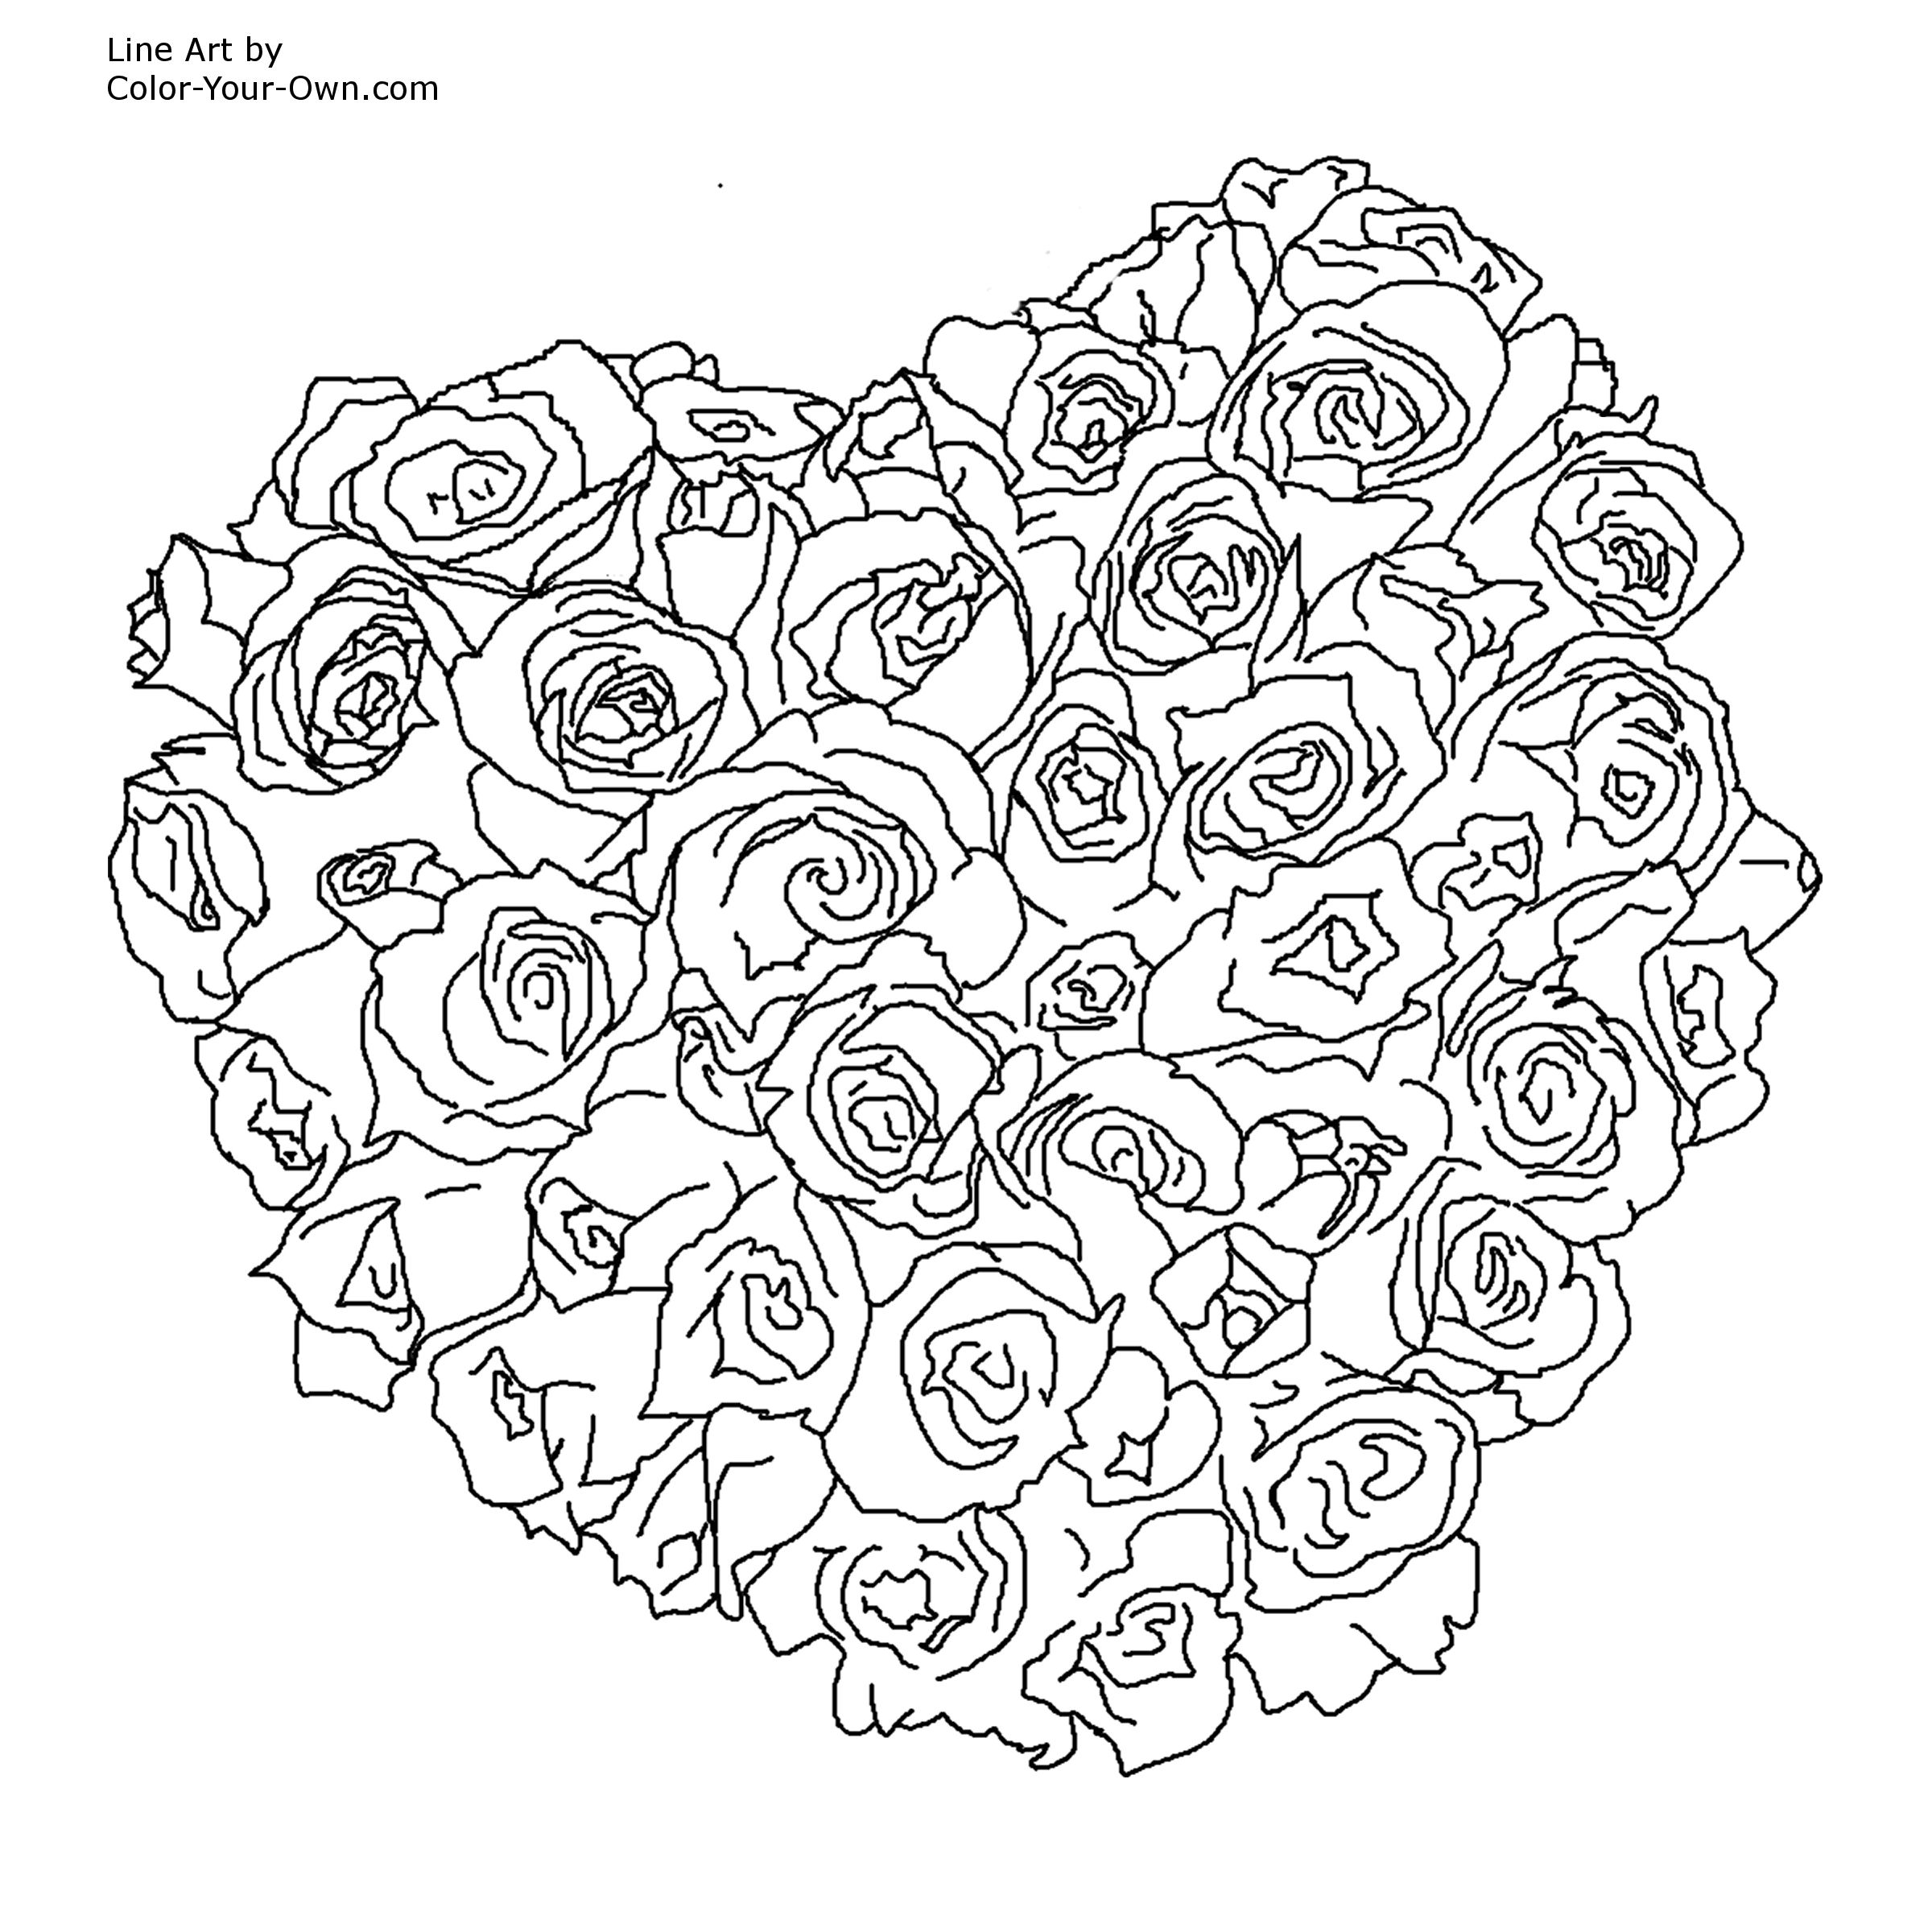 Line Drawings Of Roses